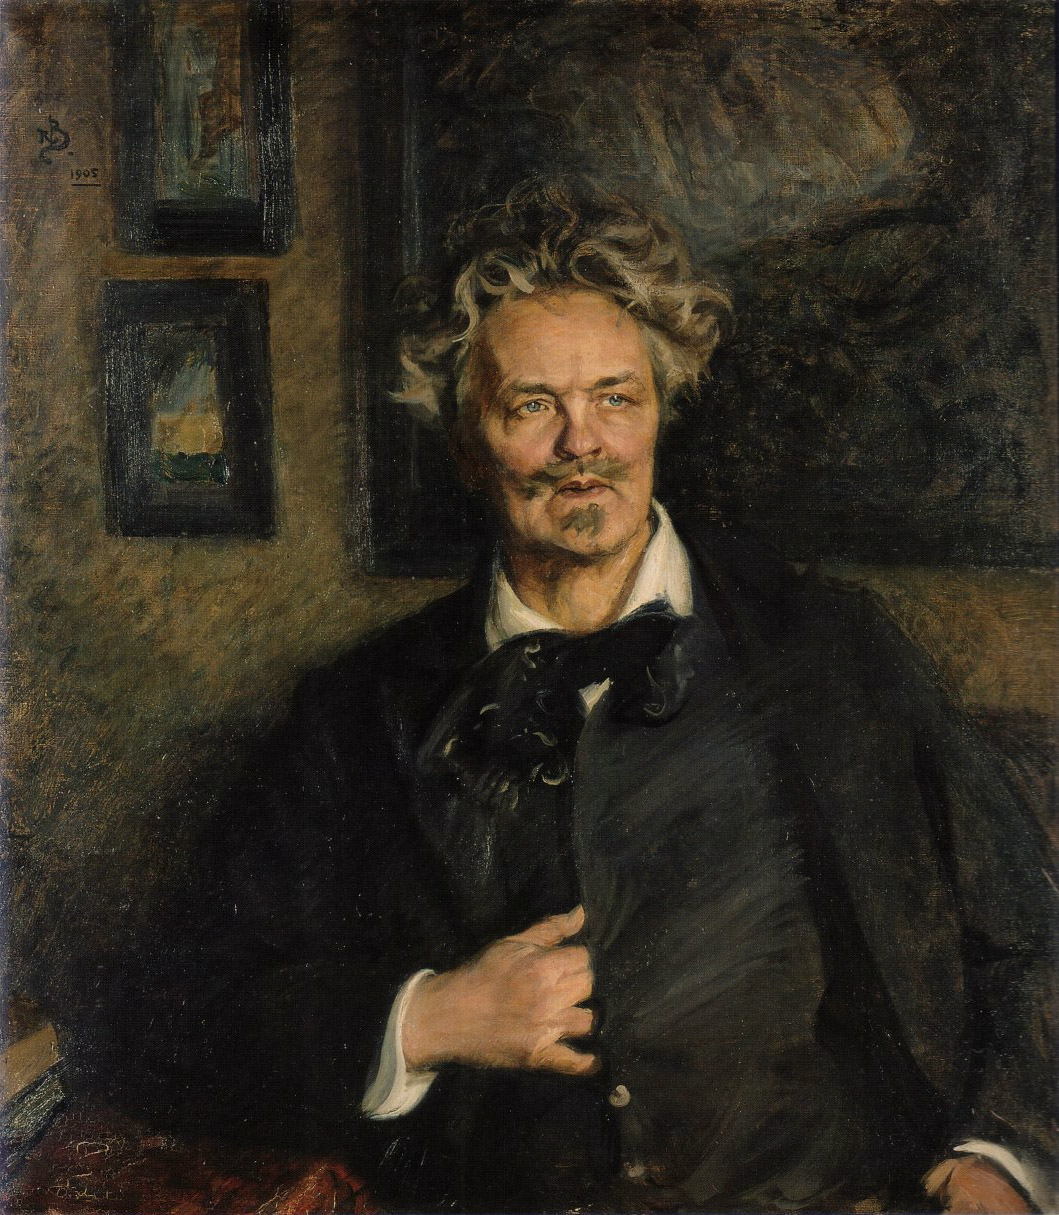 http://upload.wikimedia.org/wikipedia/commons/6/6c/Portrait_of_August_Strindberg_by_Richard_Bergh_1905.jpg